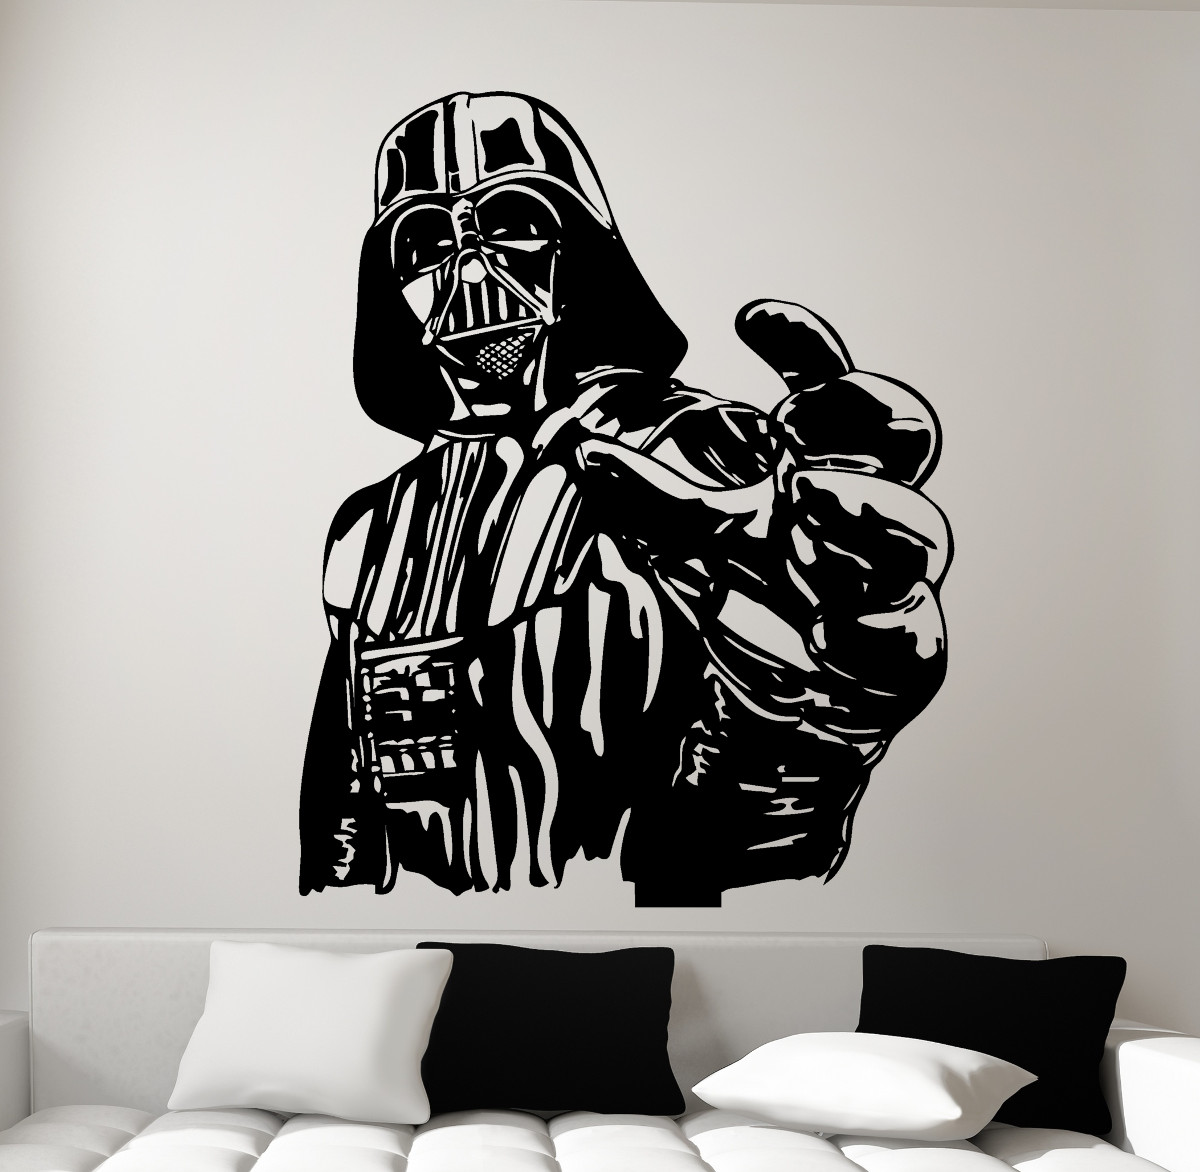 streetwall wandtattoo darth vader star wars wandbild aufkleber. Black Bedroom Furniture Sets. Home Design Ideas